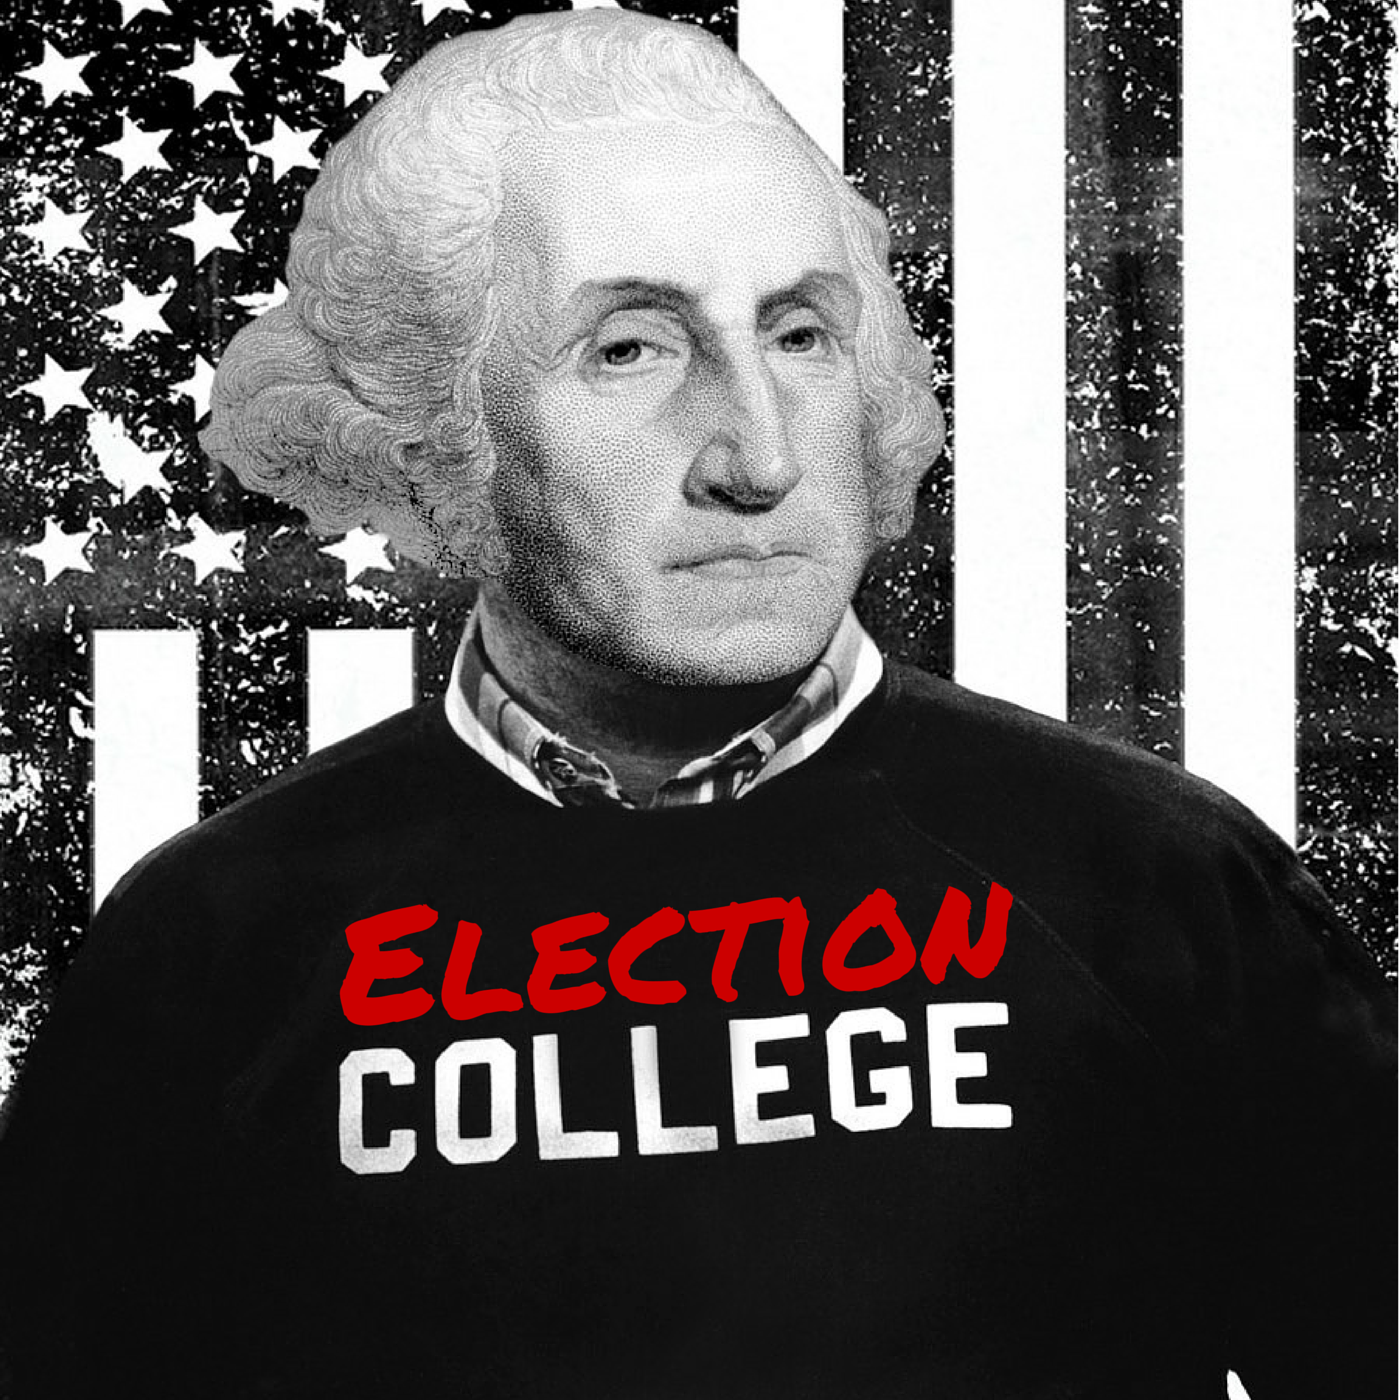 James K Polk - Part 1 | Episode #185 | Election College: United States Presidential Election History